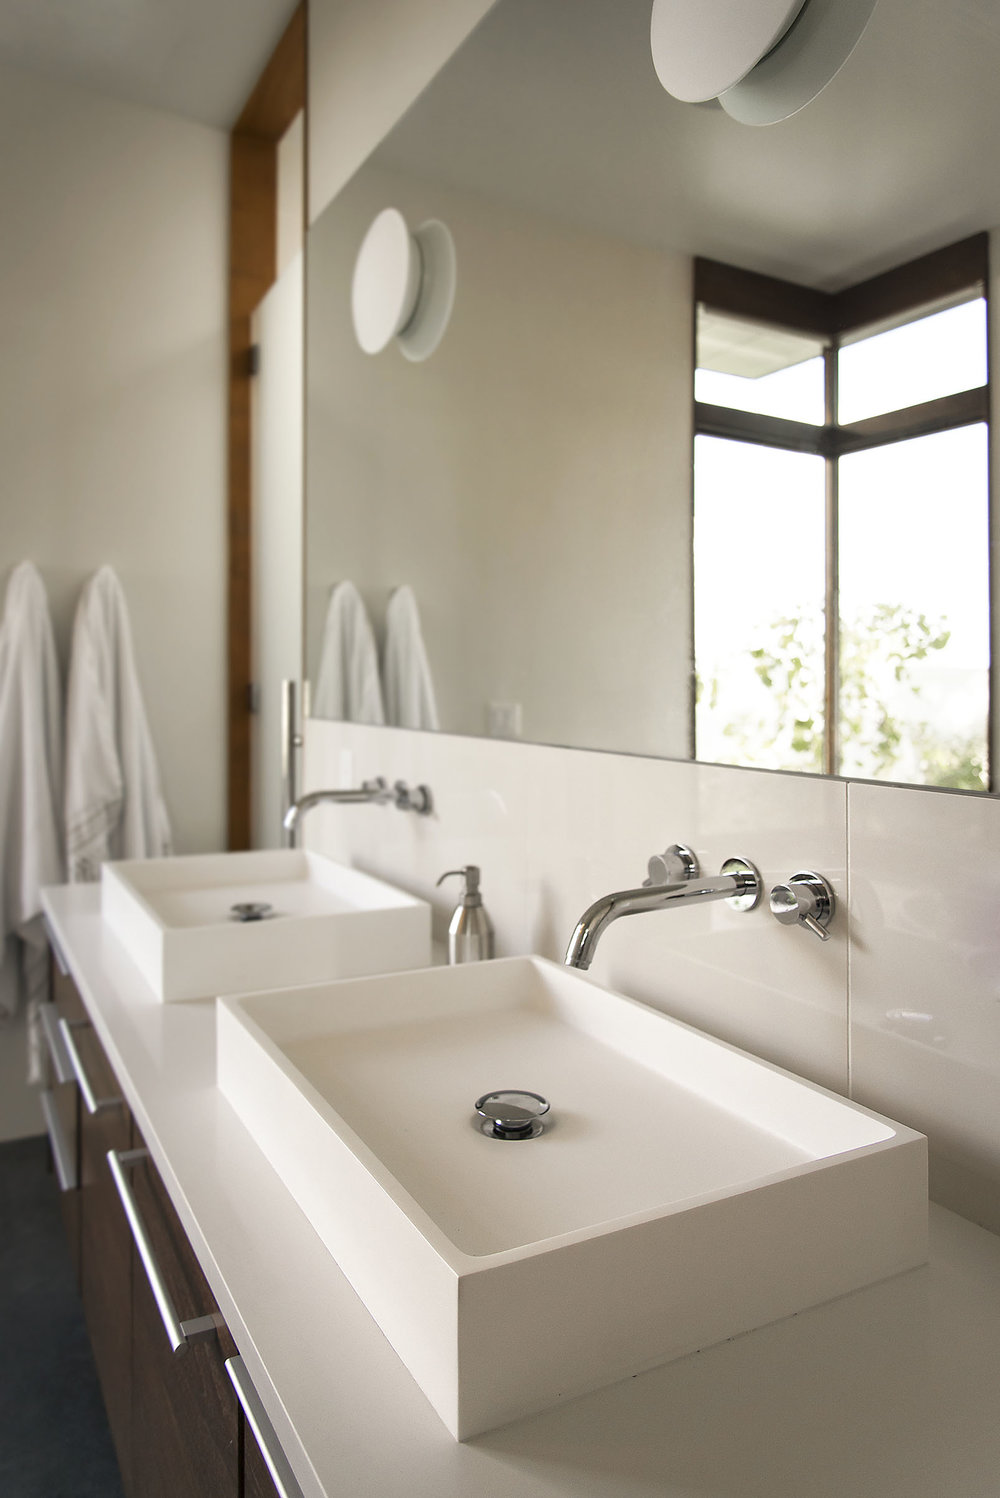 Rock Canyon  home - modern bathroom vanity sporting rectangular white vessel sinks and chrome wall mount faucets